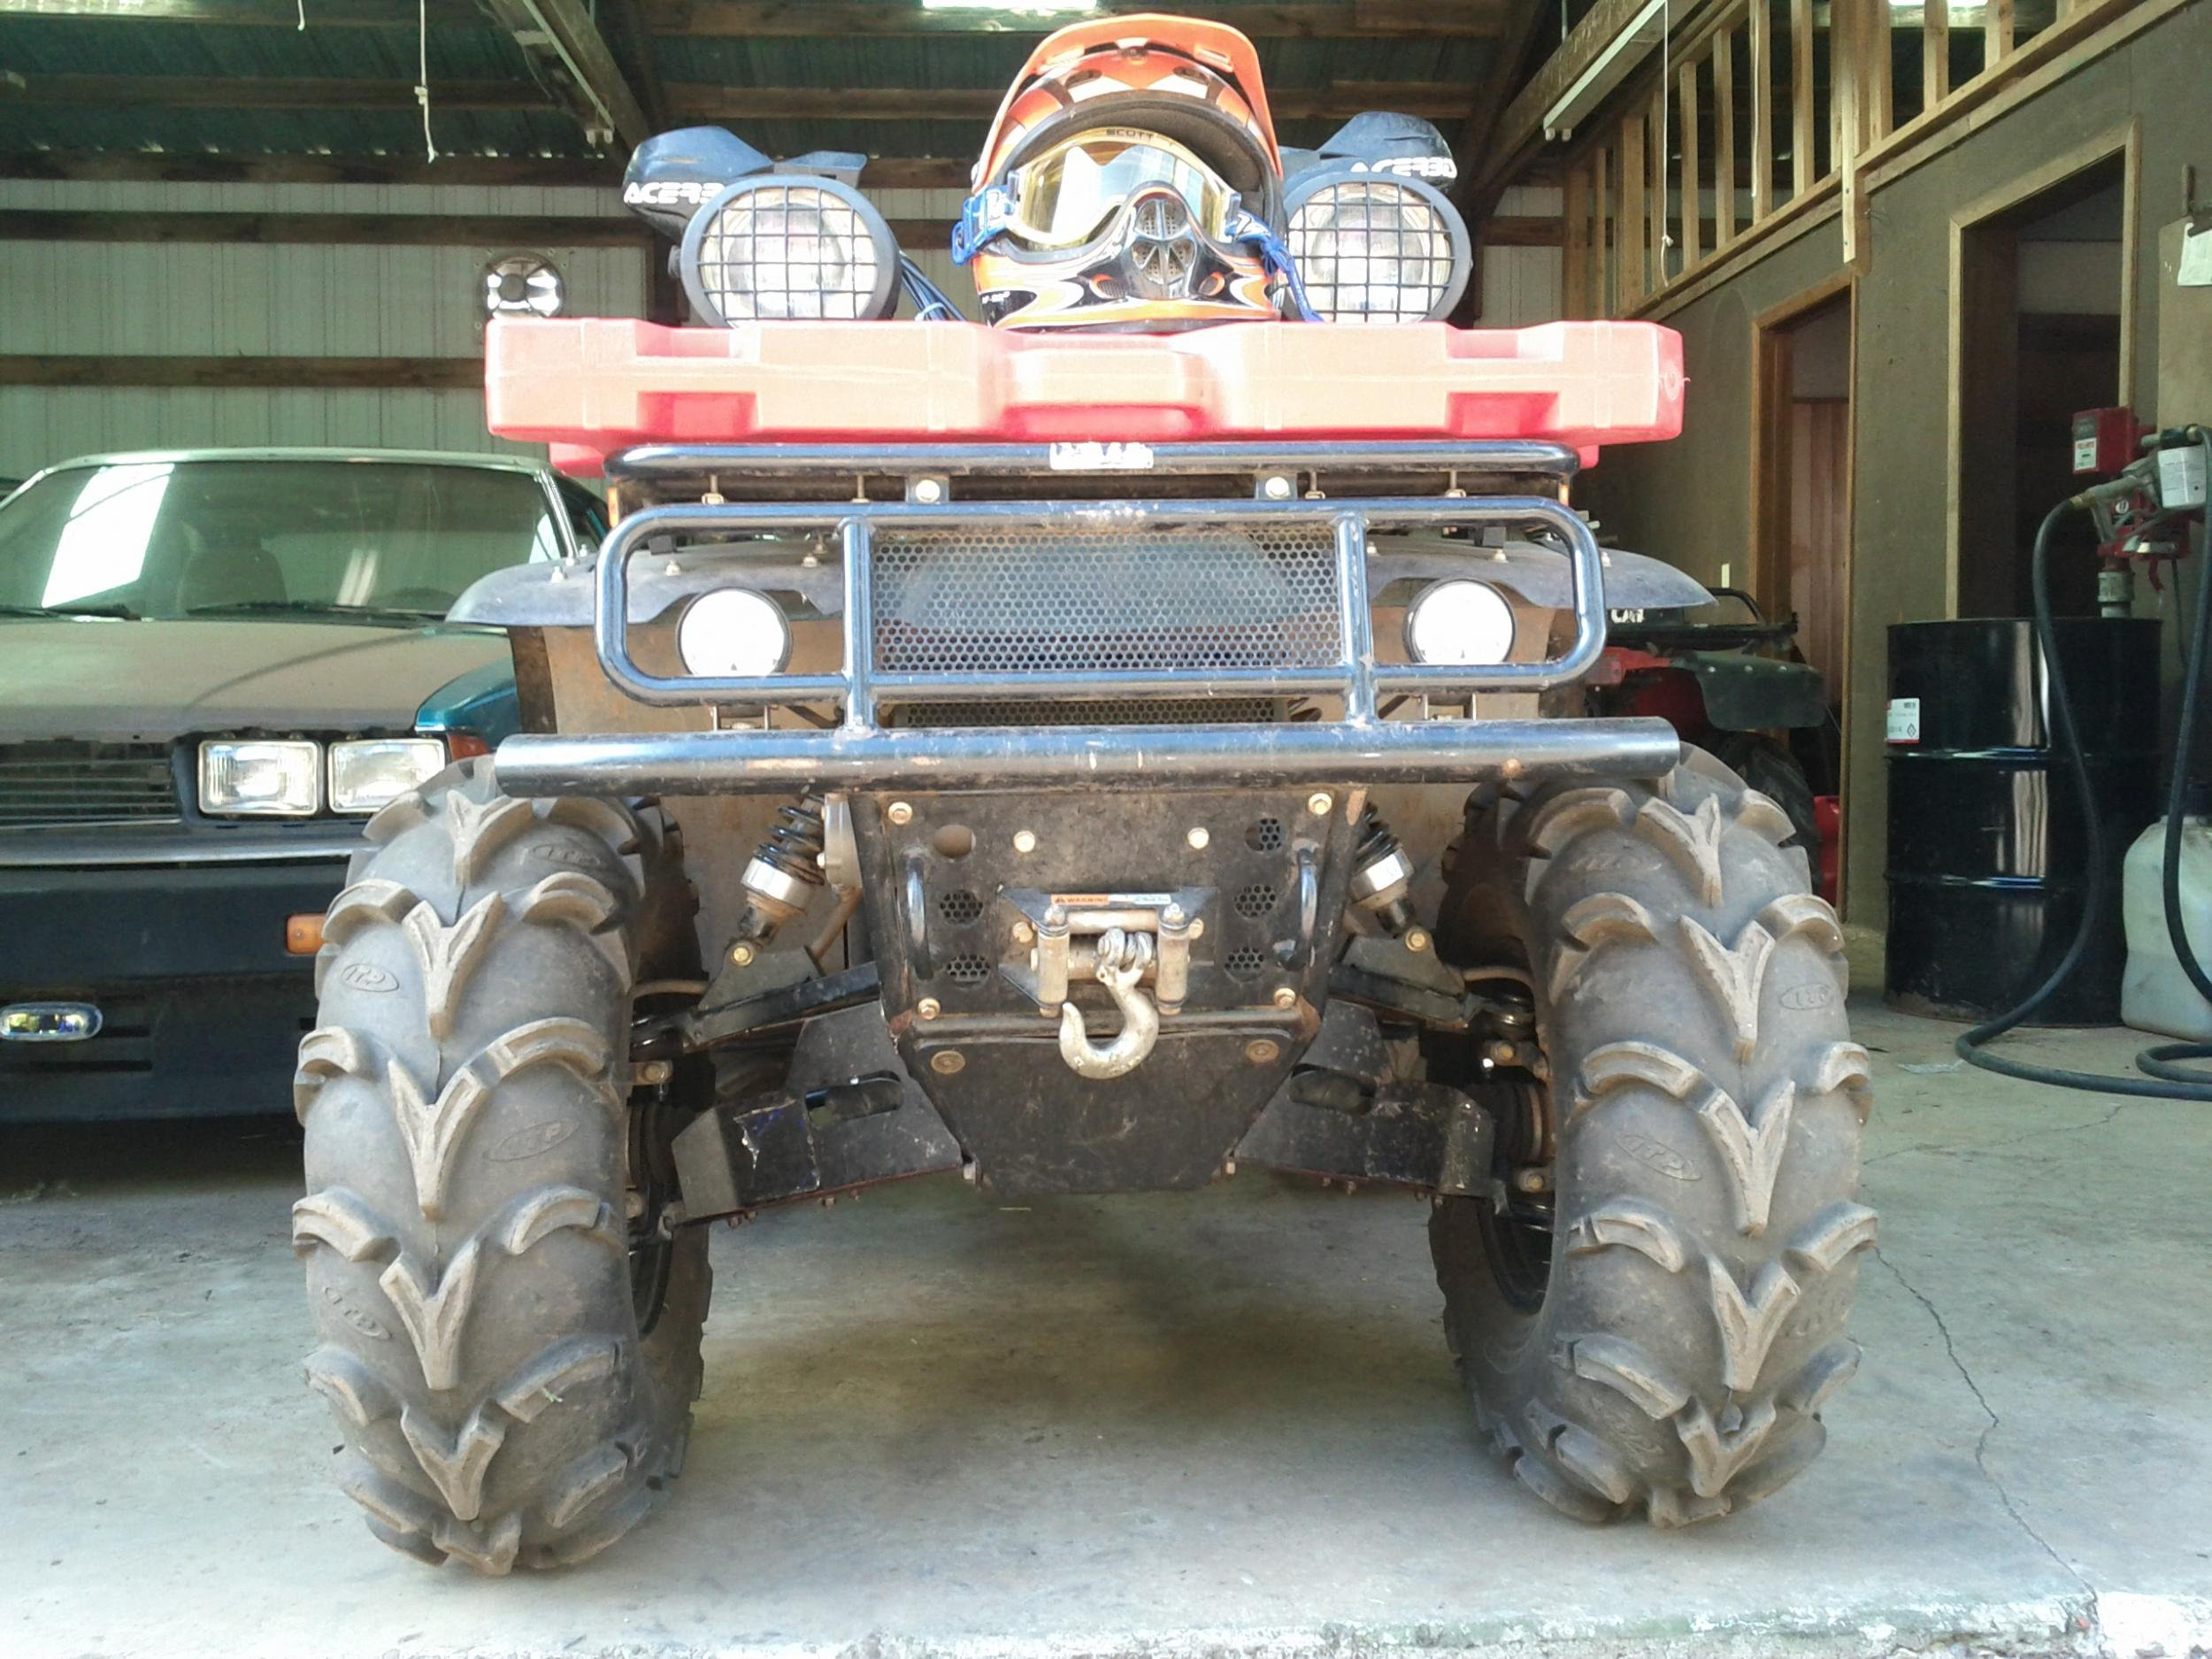 1997 Bearcat 454 - upgrades-img_20120826_153305.jpg